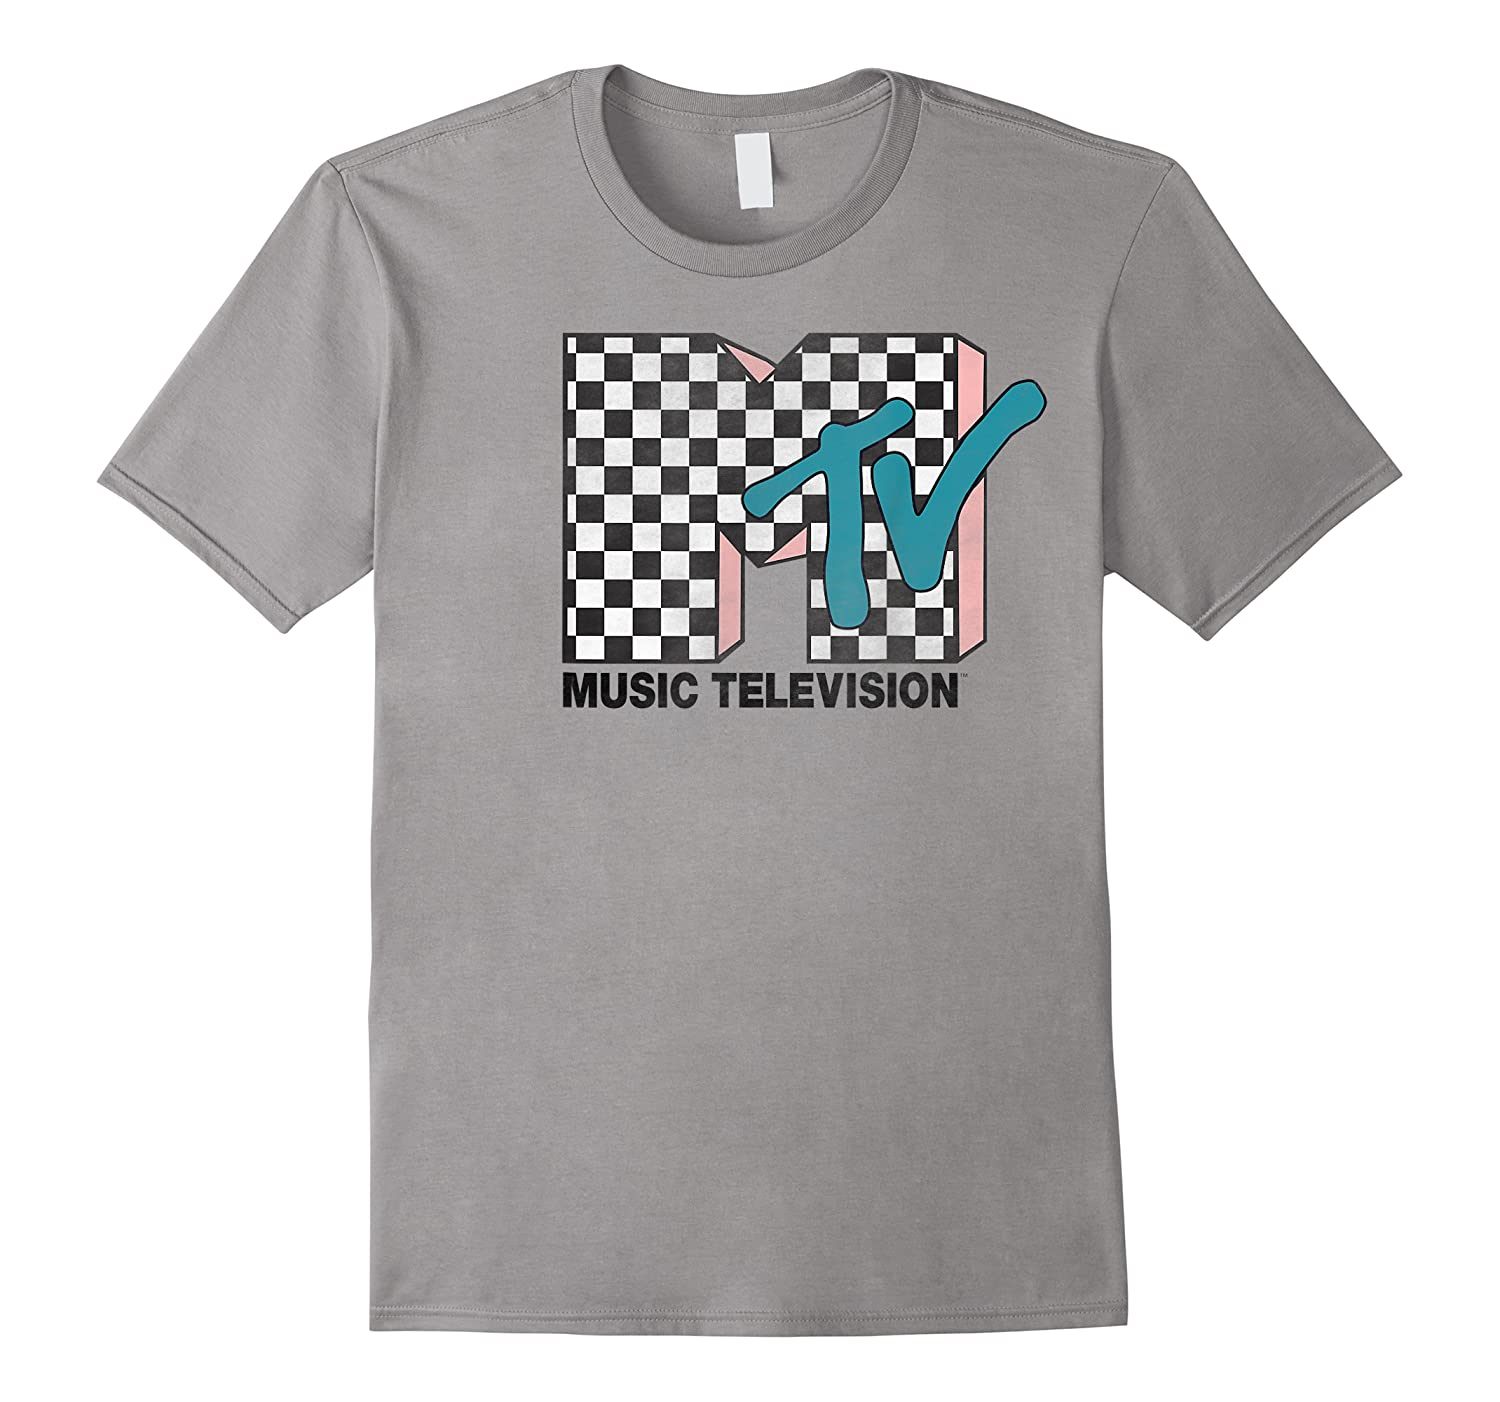 Mtv Checkered Logo Pink Shadow Turquoise Tv Graphic T-shirt